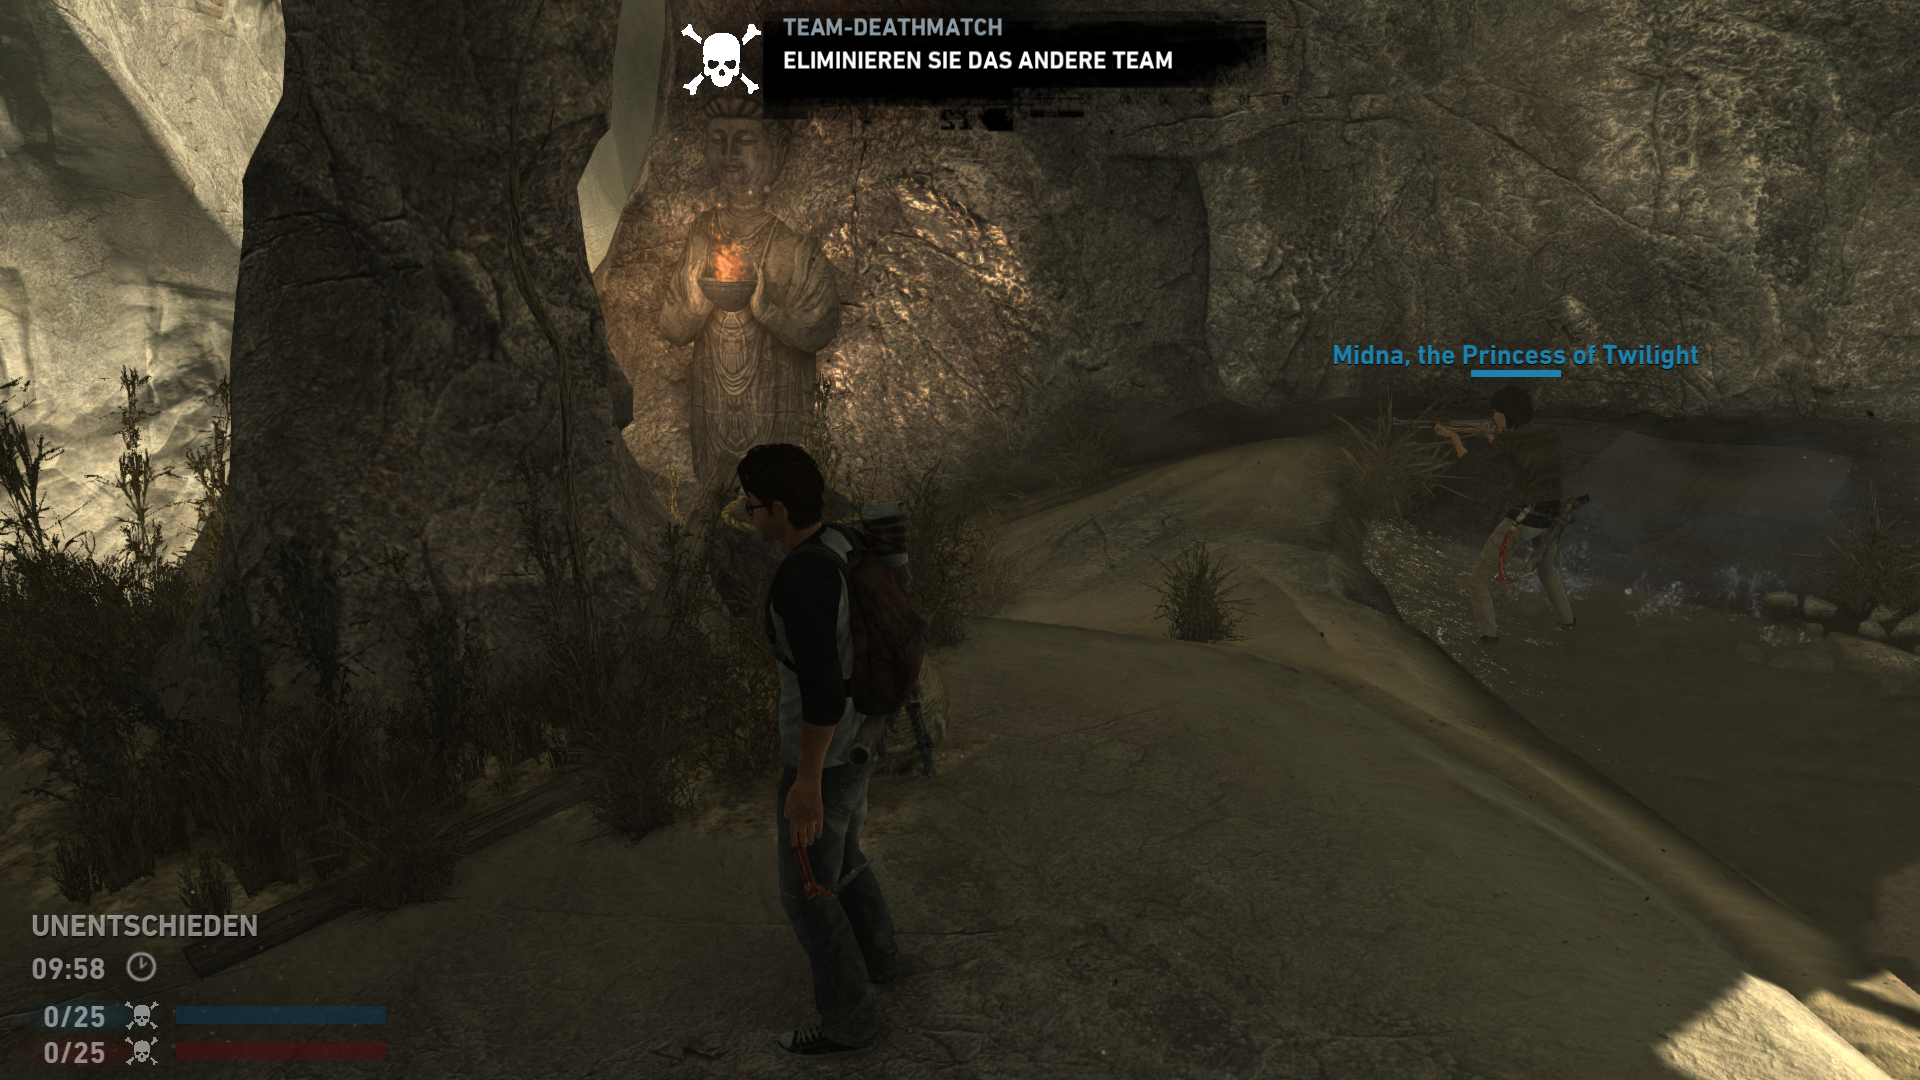 TombRaider20130714135133733a275.png